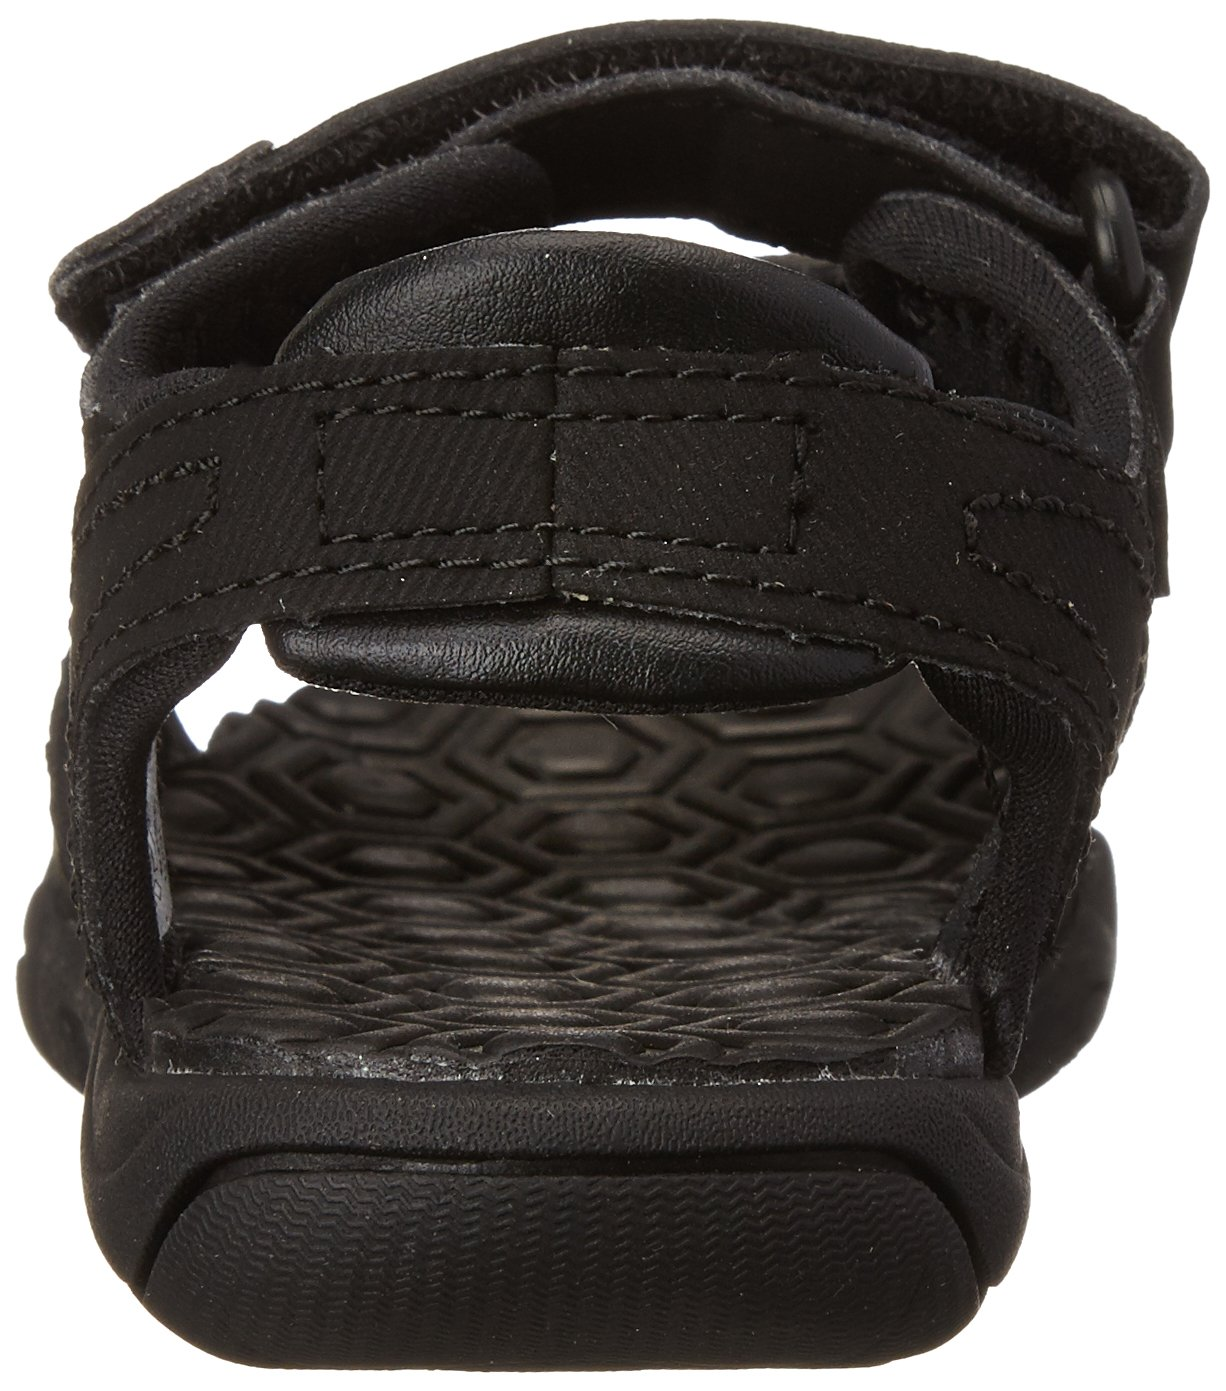 Timberland Adventure Seeker Two-Strap Sandal (Toddler/Little Kid),Blackout,9 M US Toddler by Timberland (Image #2)